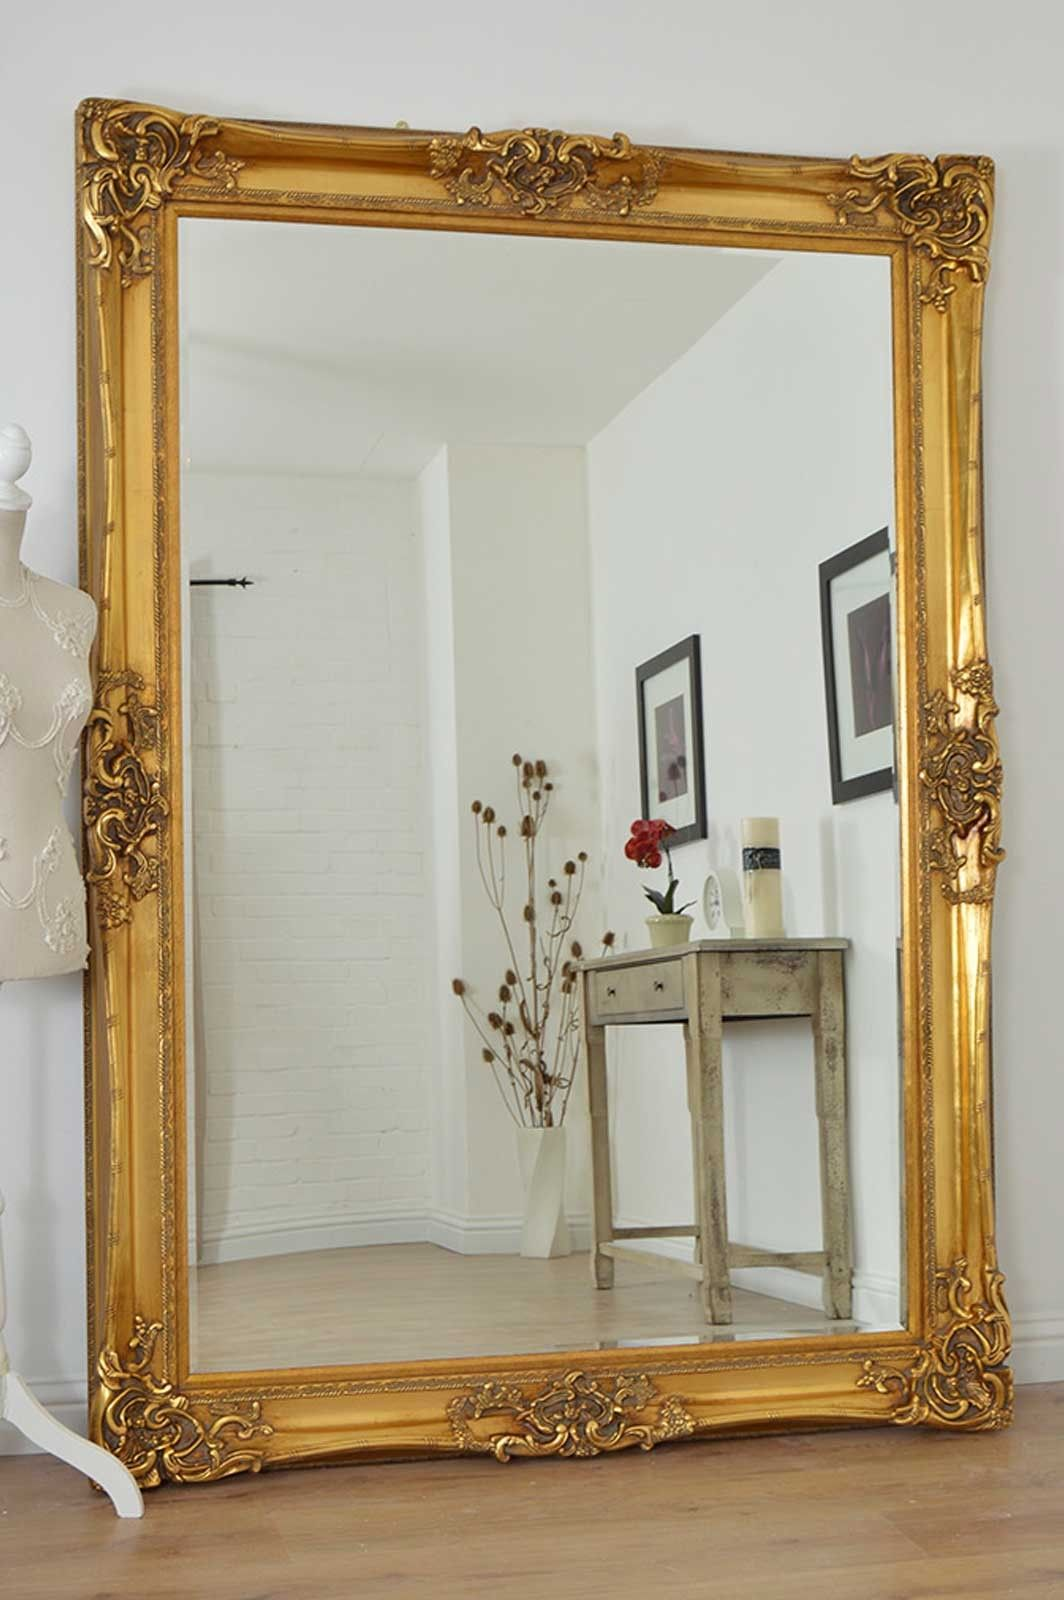 Large gold very ornate antique design wall mirror 7ft x for Giant bedroom mirror